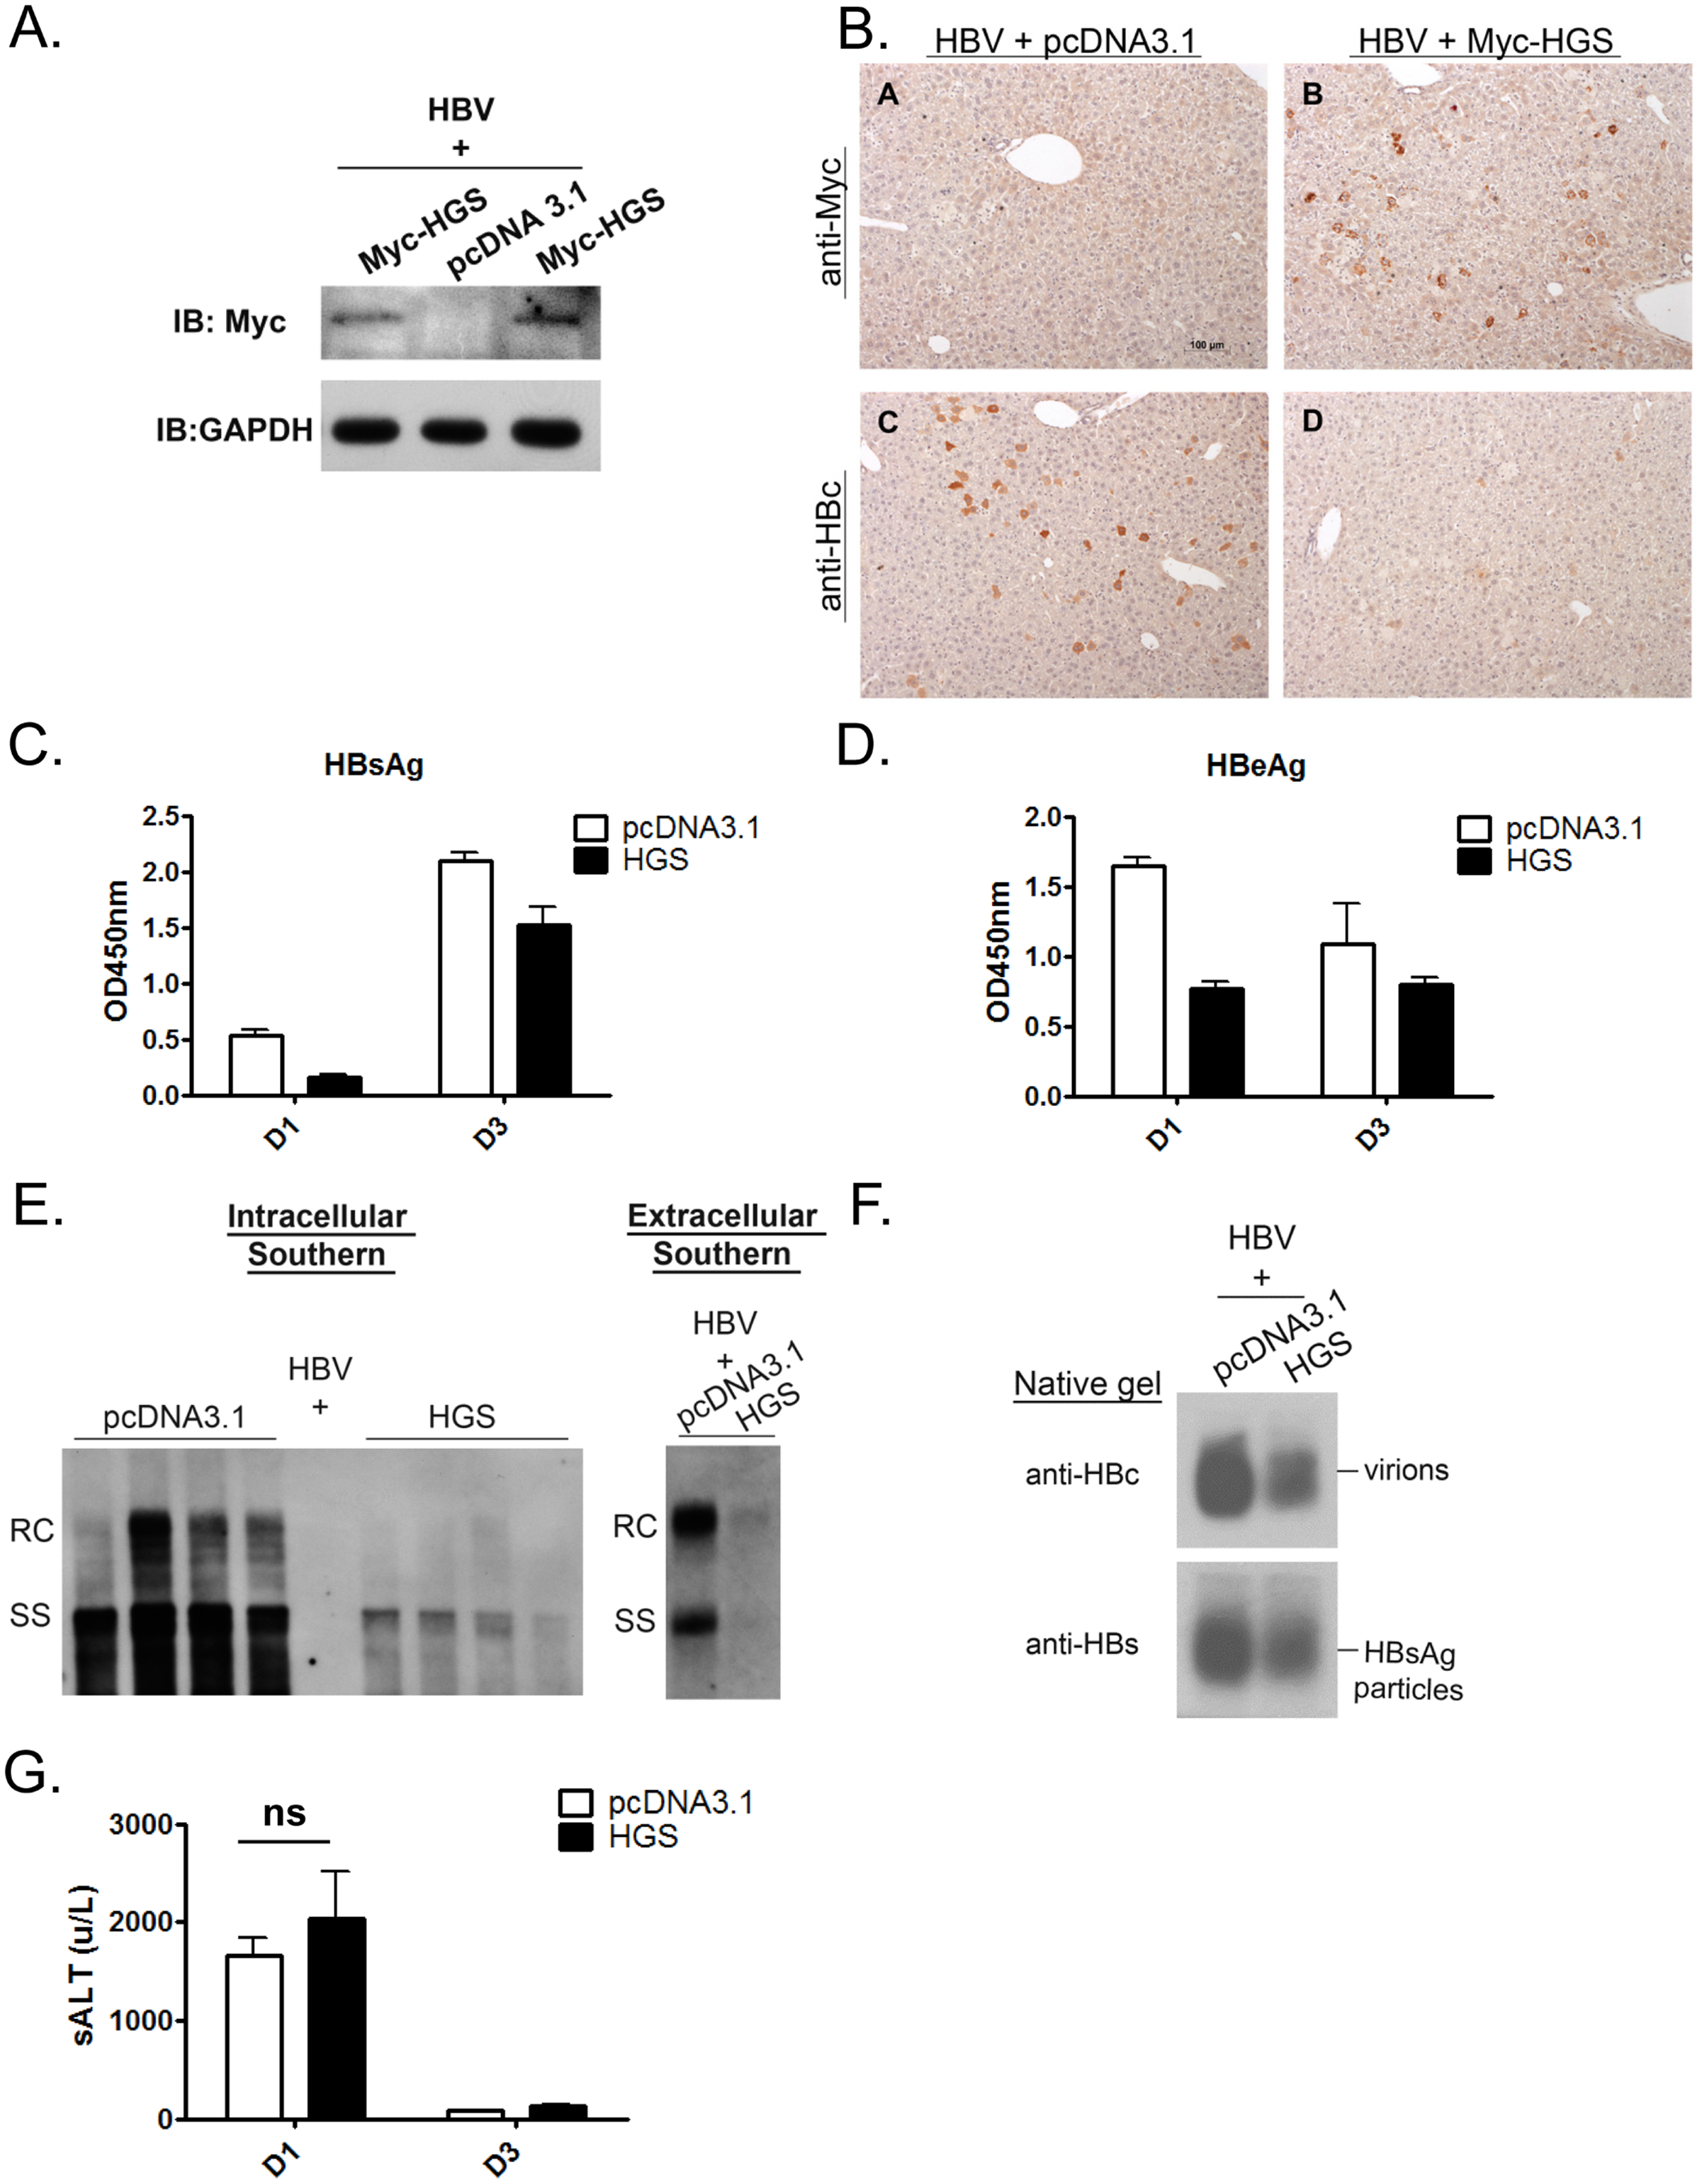 Overexpressed HGS significantly suppressed HBV replication <i>in vivo</i>.